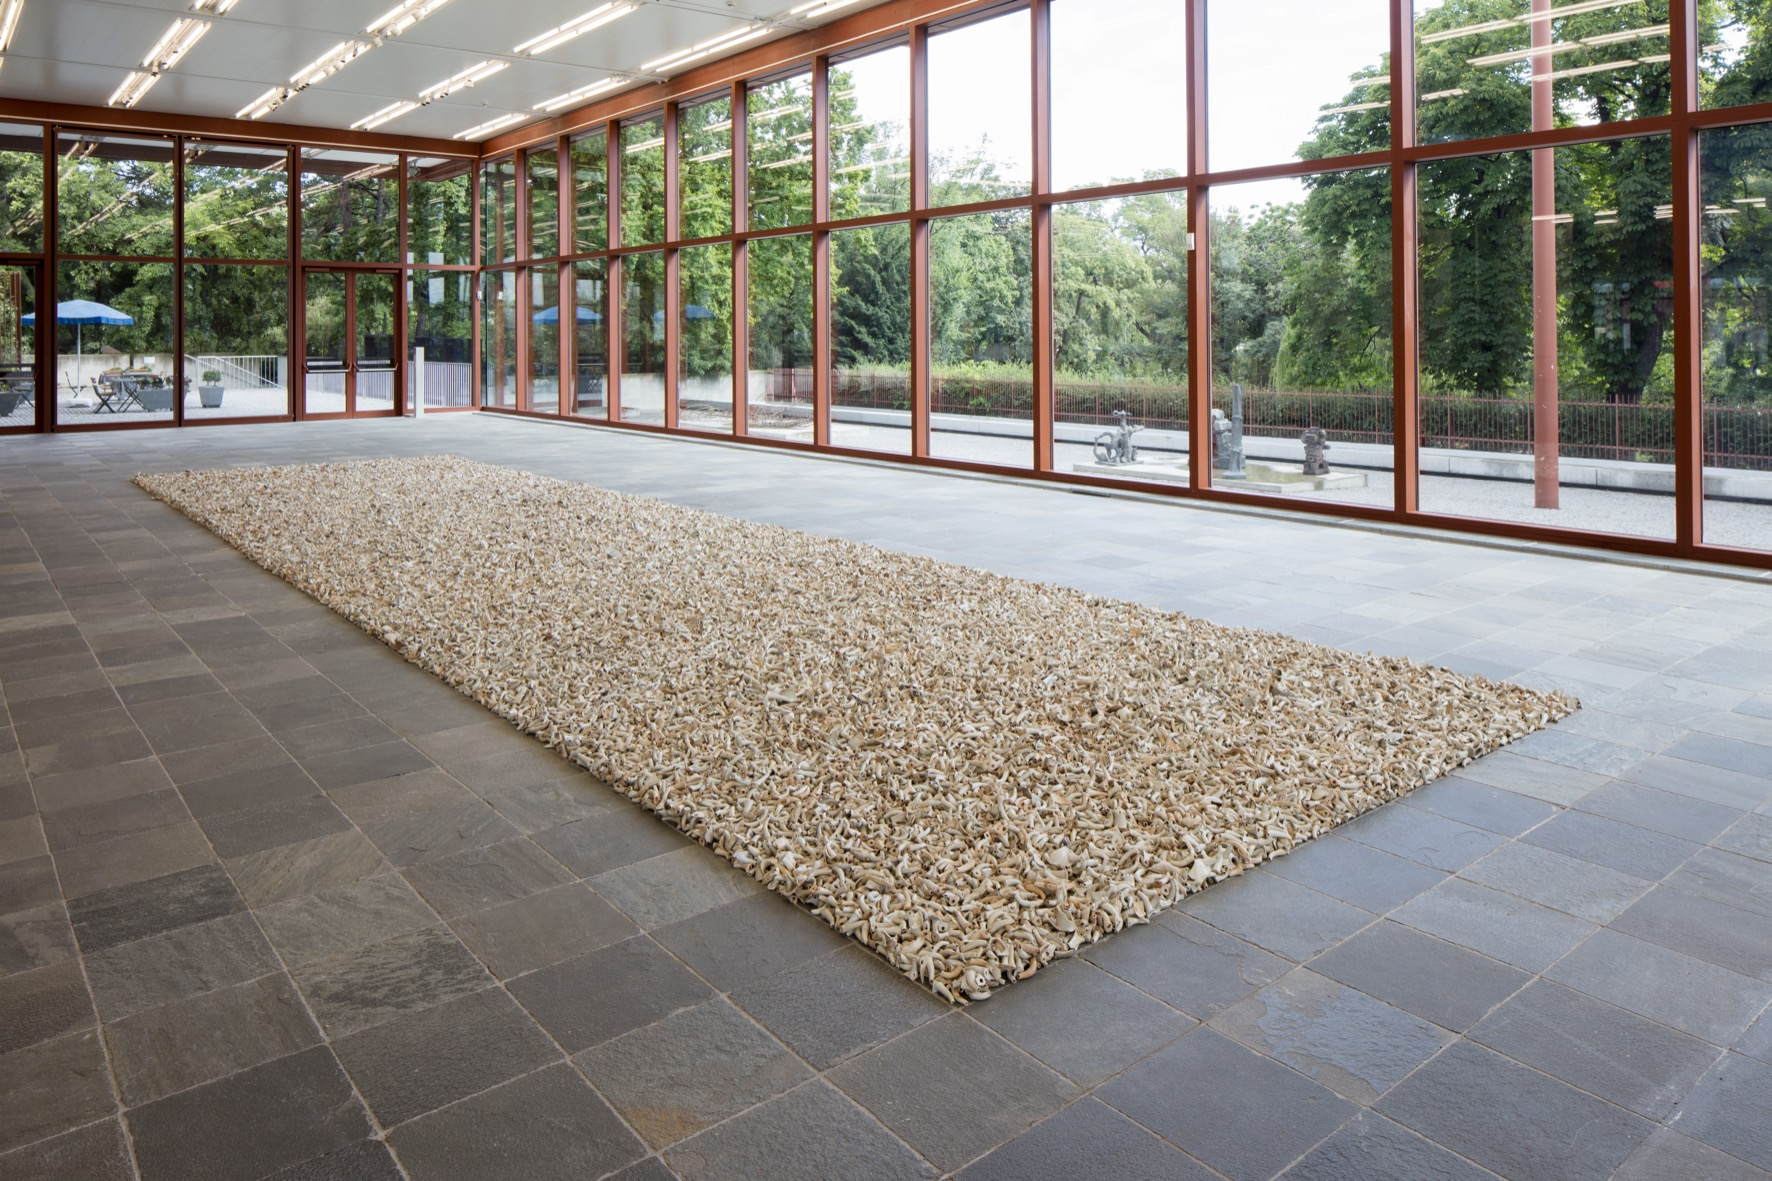 100,000 antique ceramic spouts from the Song to Qing dynasties;  Installation size: 1400 x 400 cm